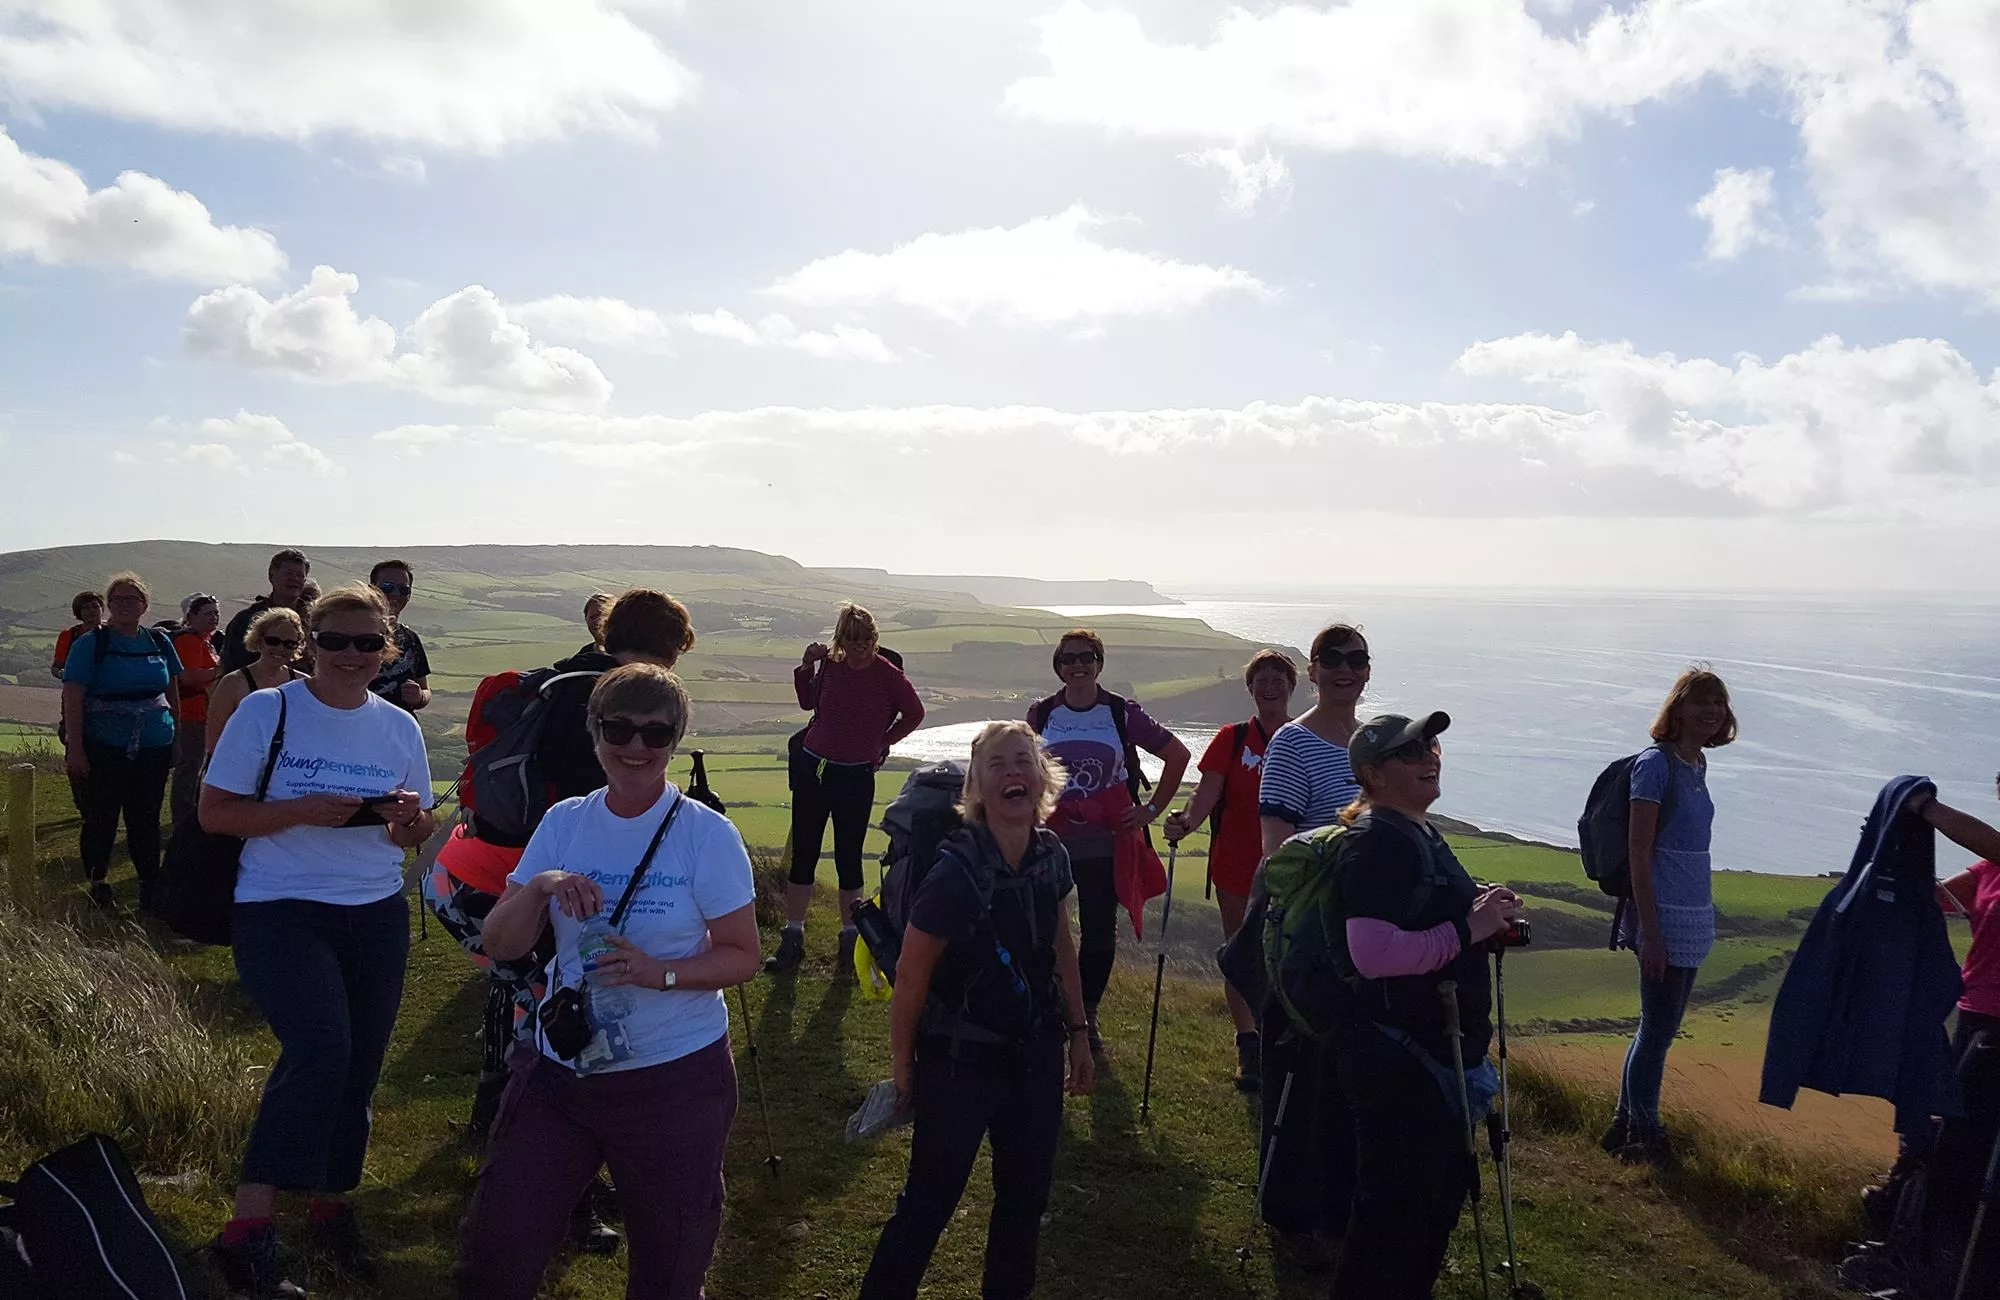 Fundraising challengers on the Jurassic Coast